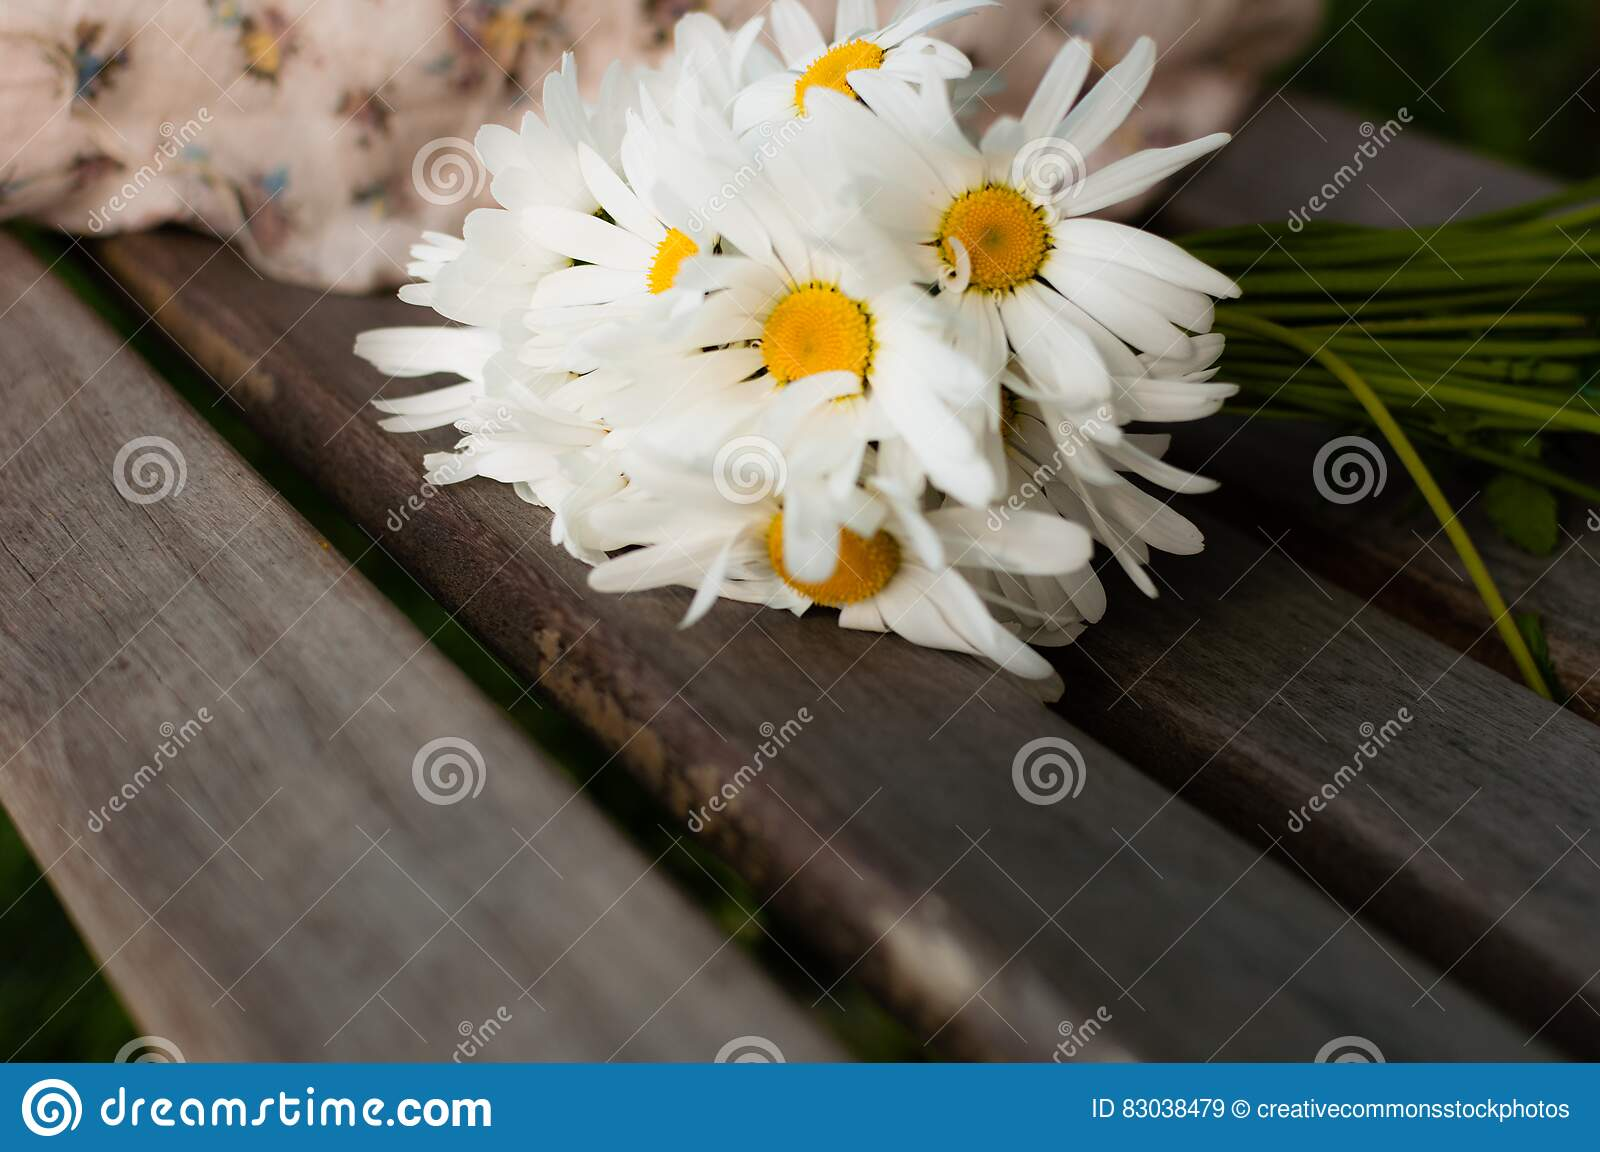 Free Public Domain CC0 Image  White Daisy On Brown Wood Picture ... 1509af9767